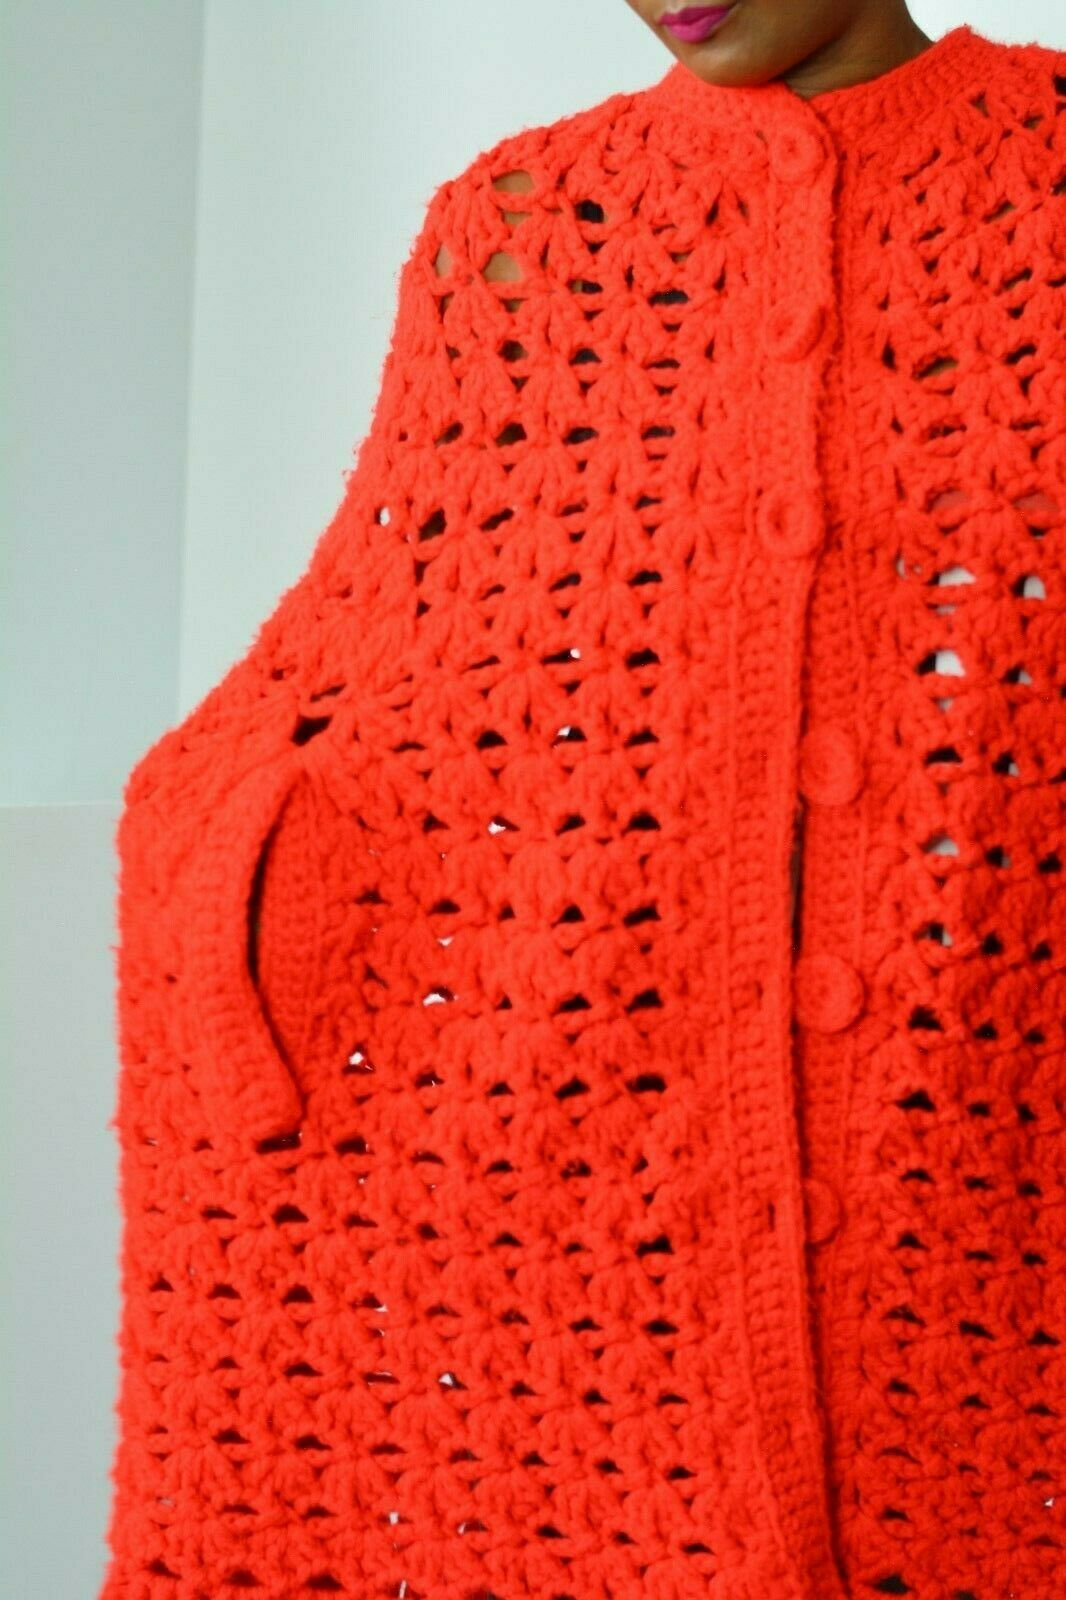 Vintage Crochet Cape Unbranded Knit Coat Homemade Red Fringe Boho One Size